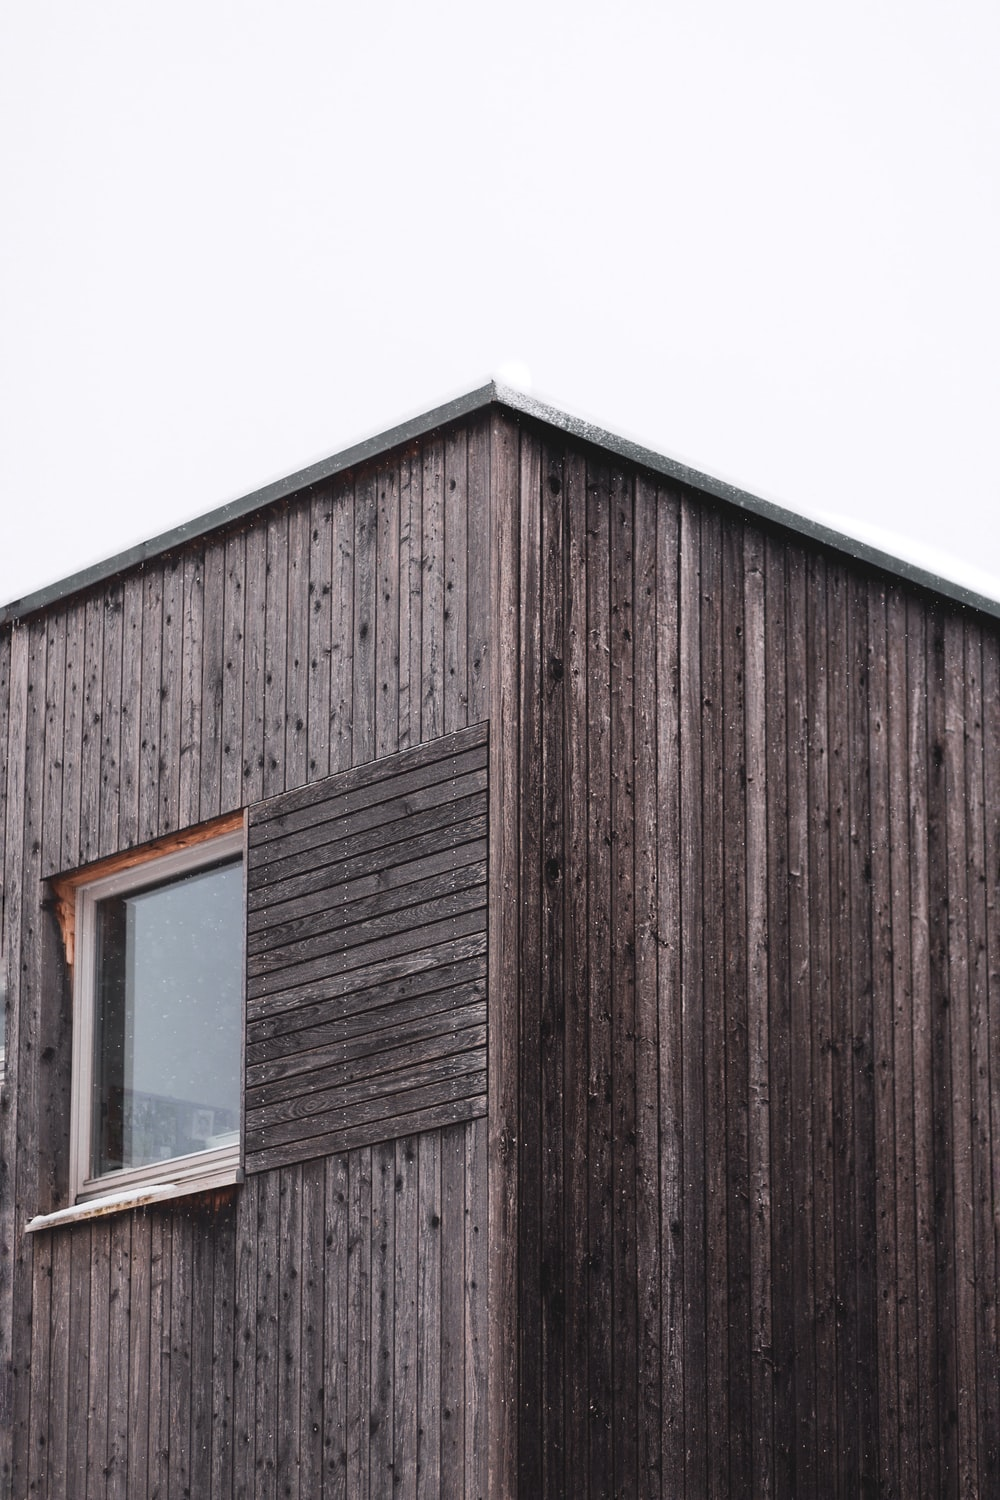 brown wooden house under white sky during daytime